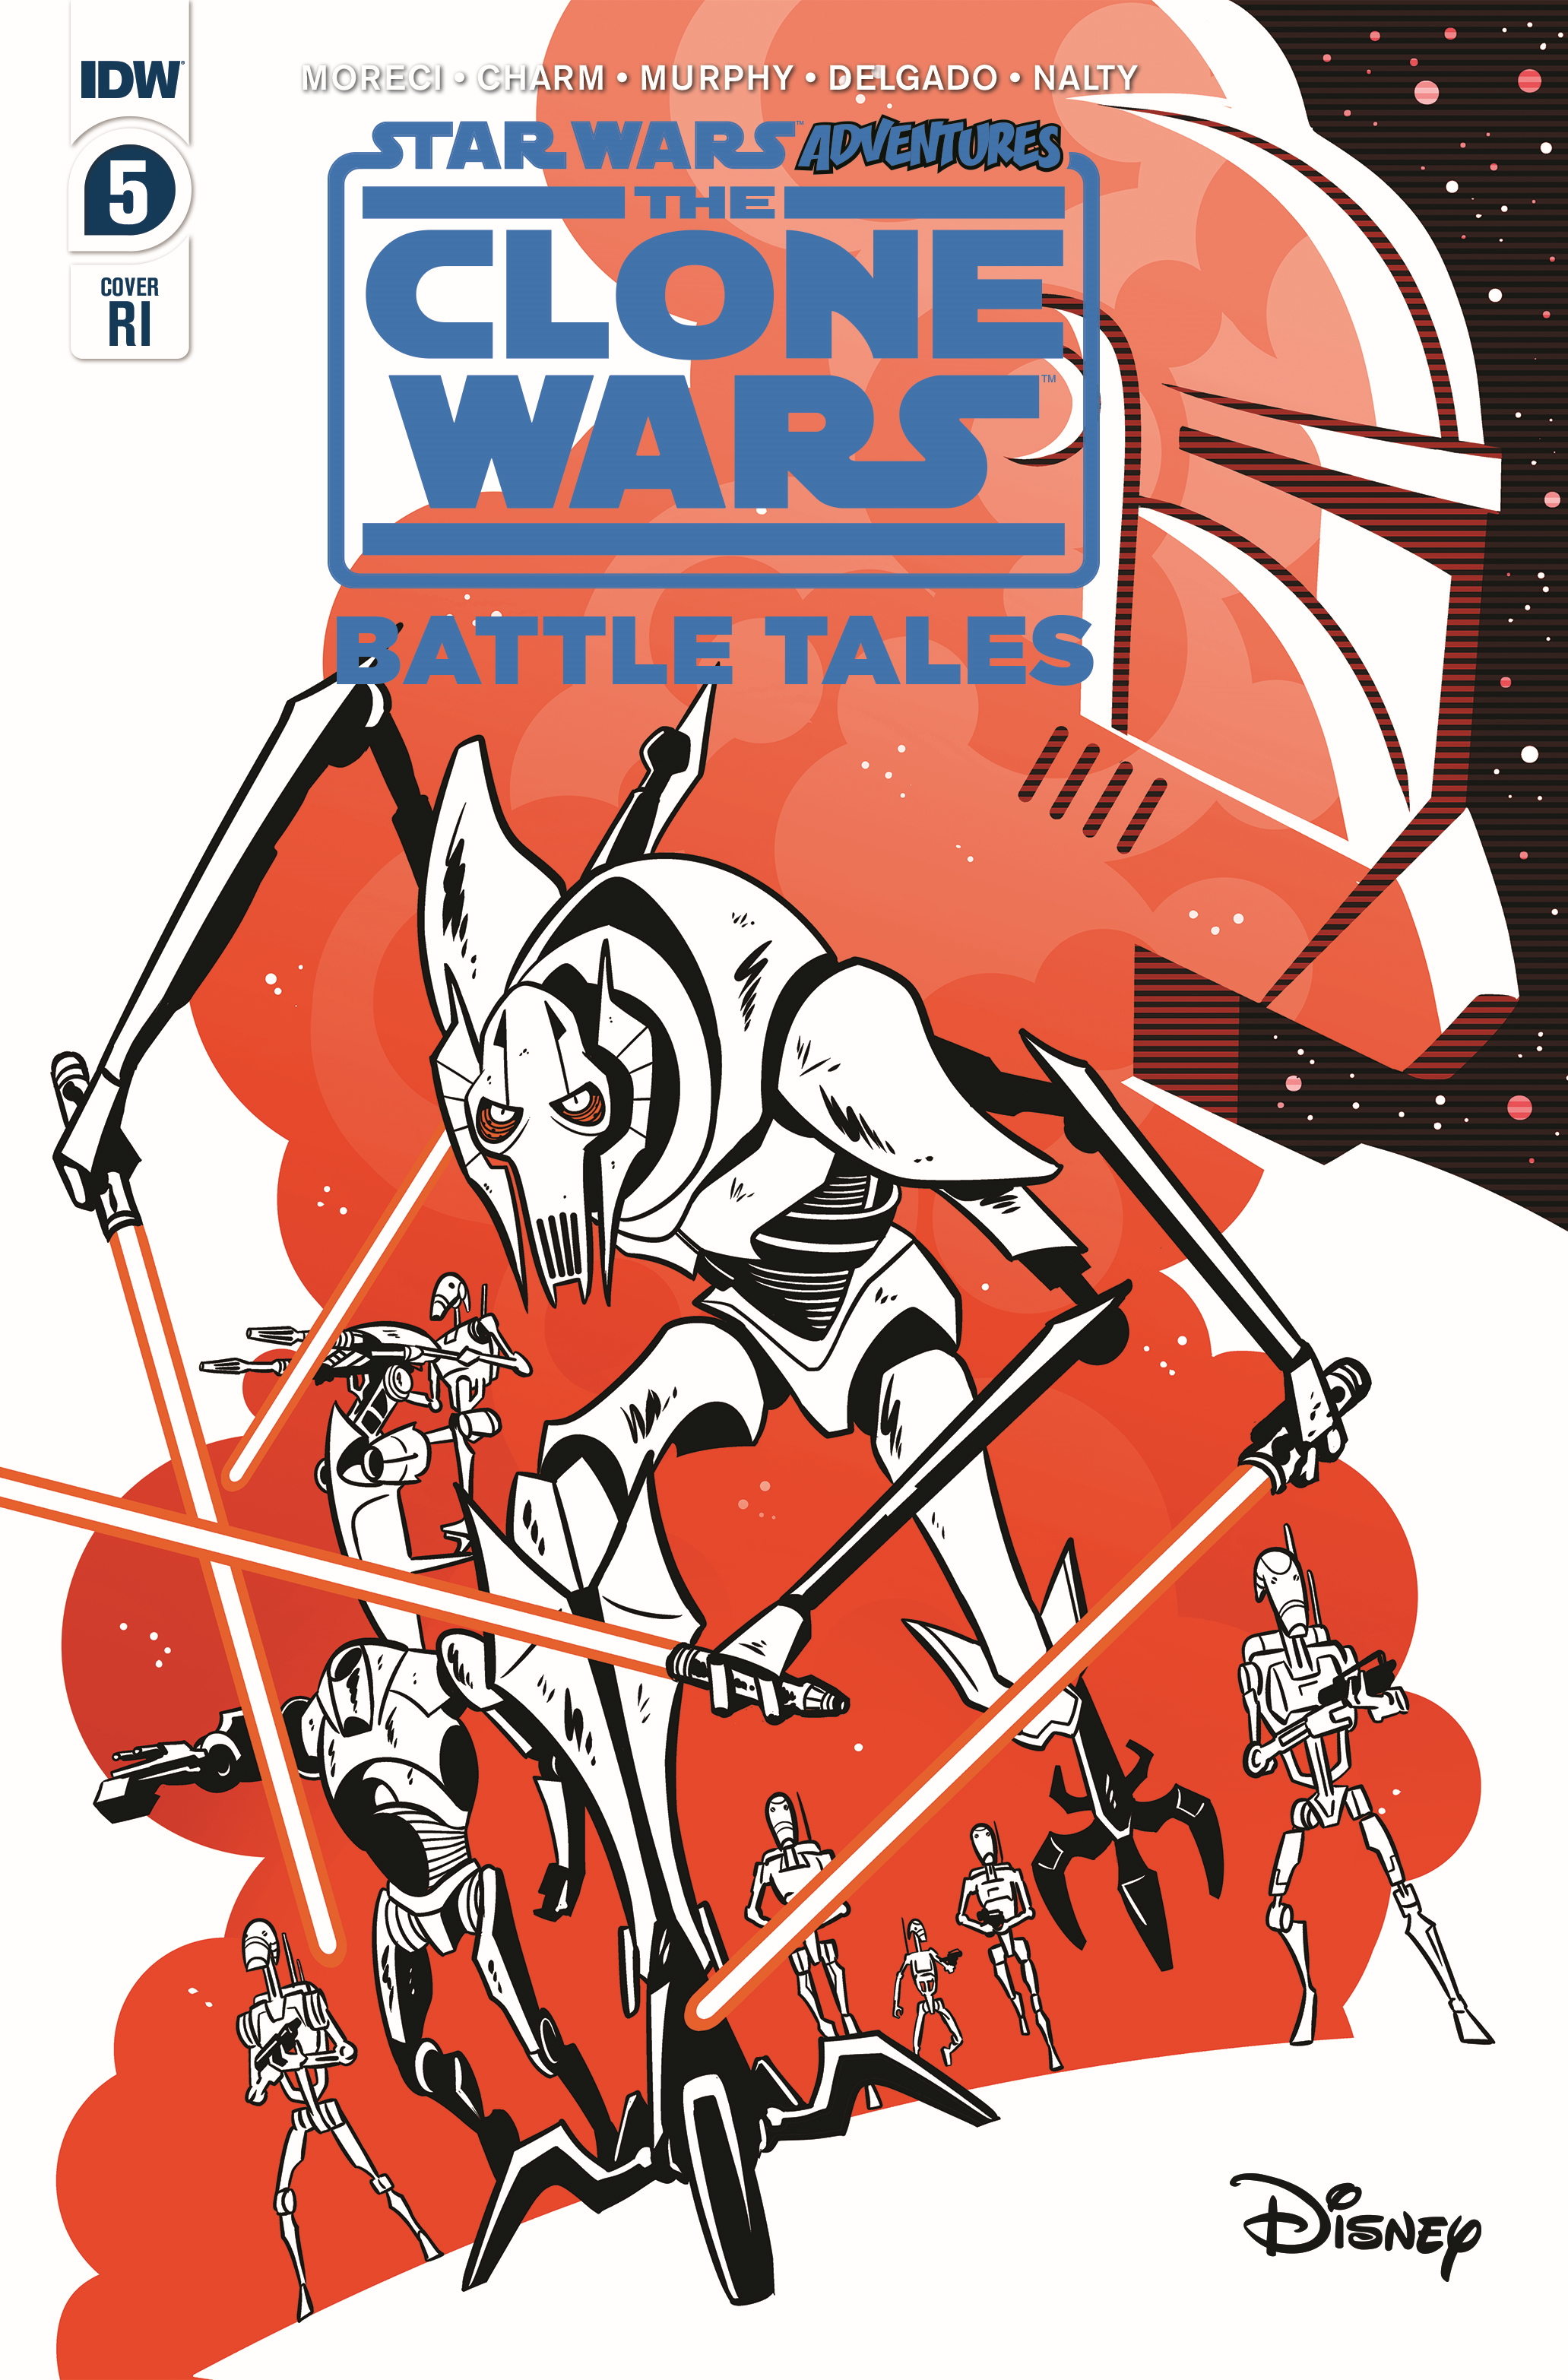 The Clone Wars - Battle Tales #5 (Derek Charm Variant Cover) (29.04.2020)